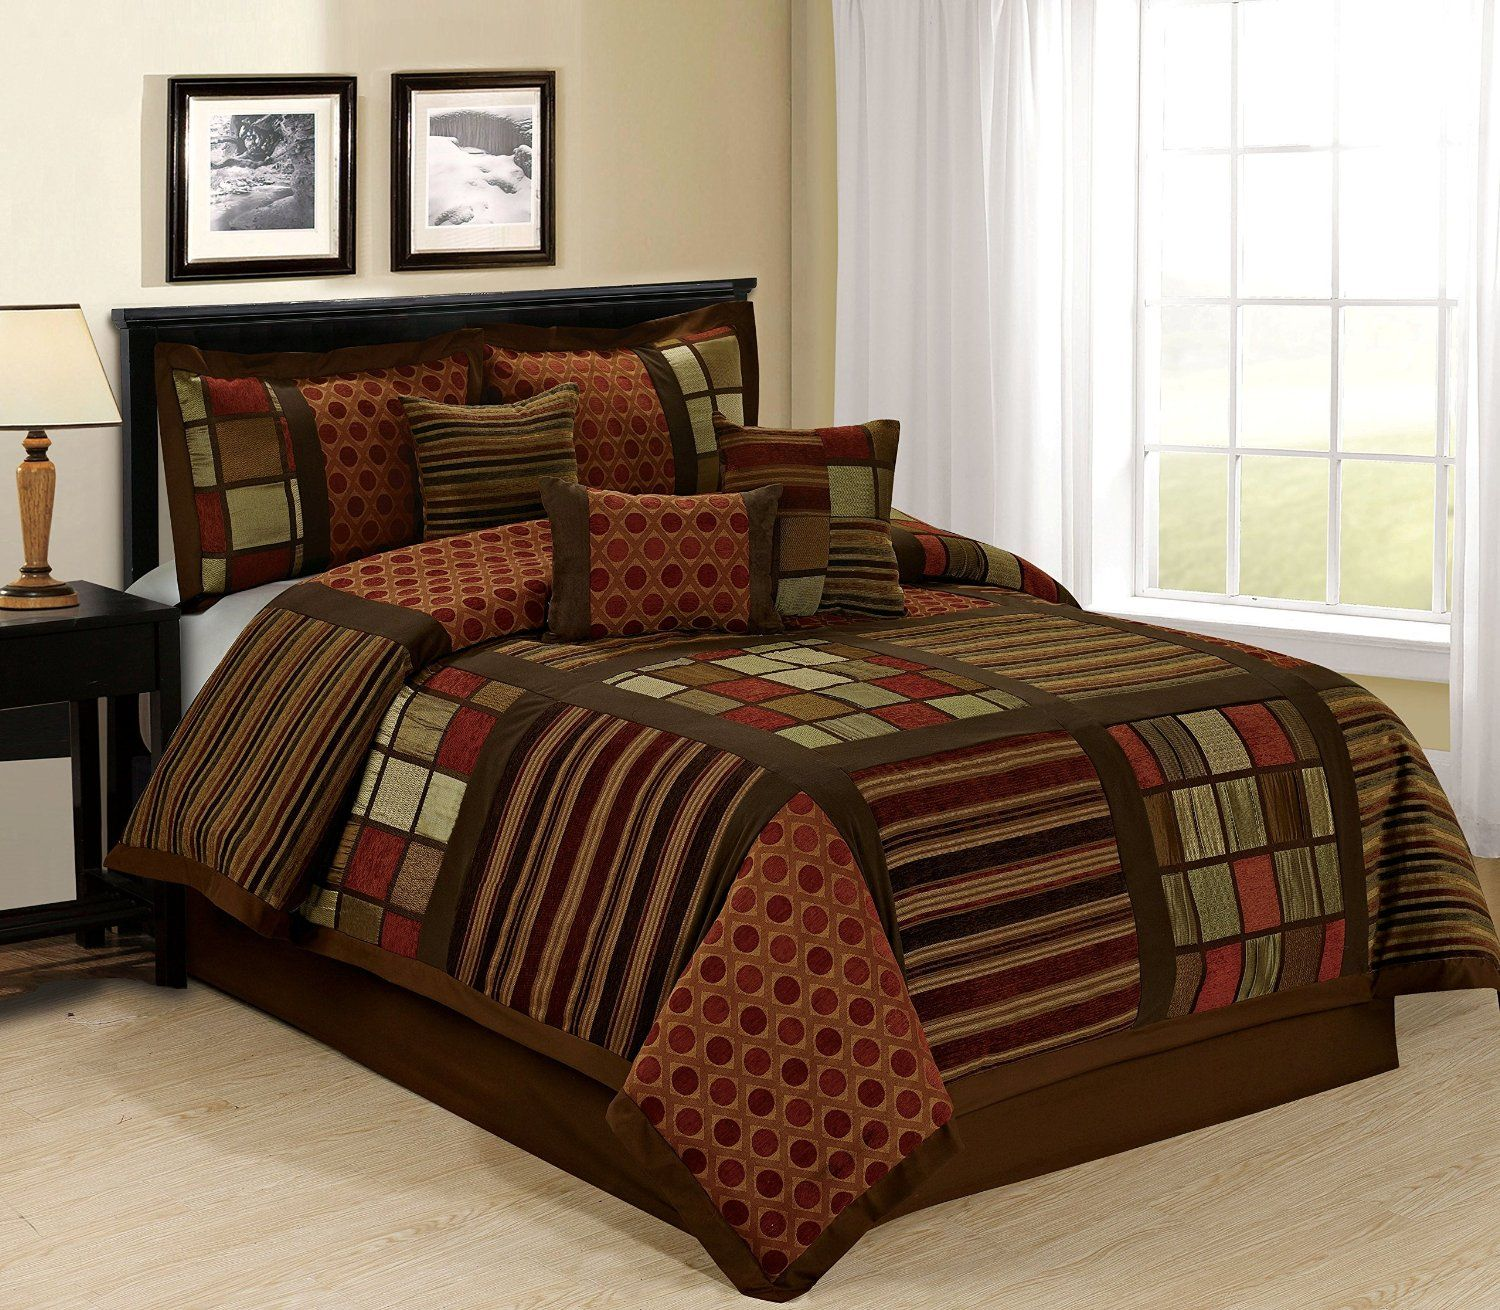 Maroon and Black Bedding Sets Maroon and